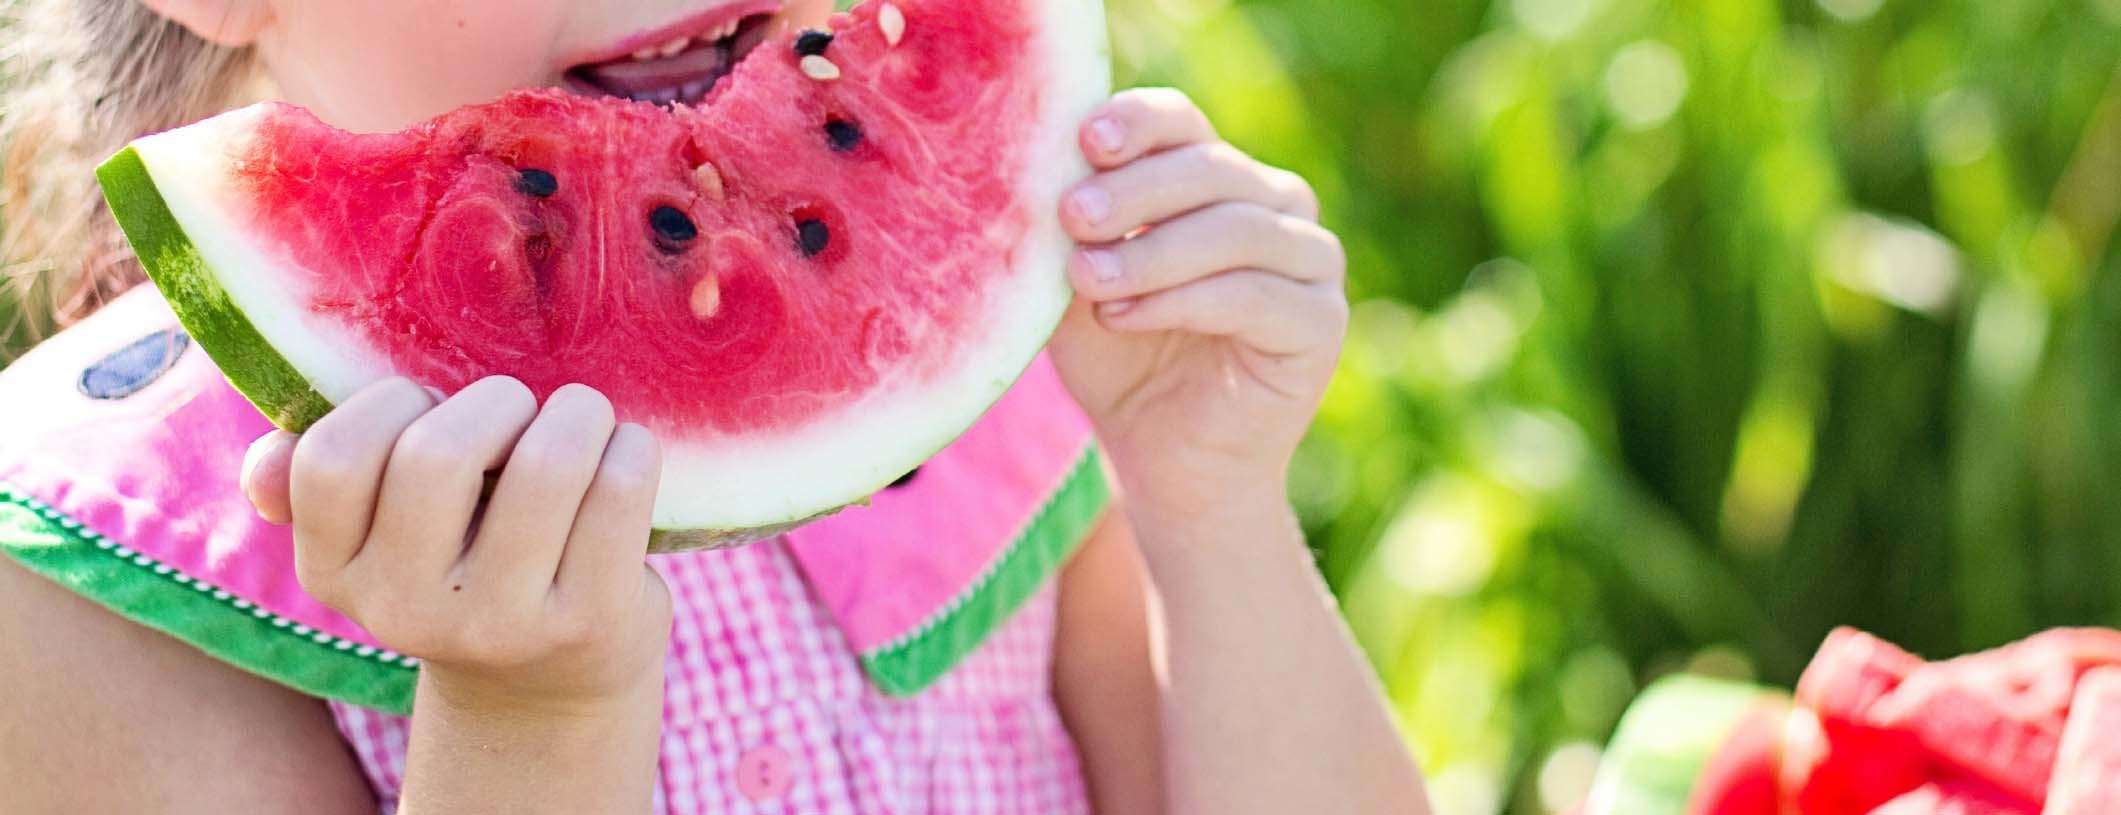 Summer safety tips blog   watermelon 01